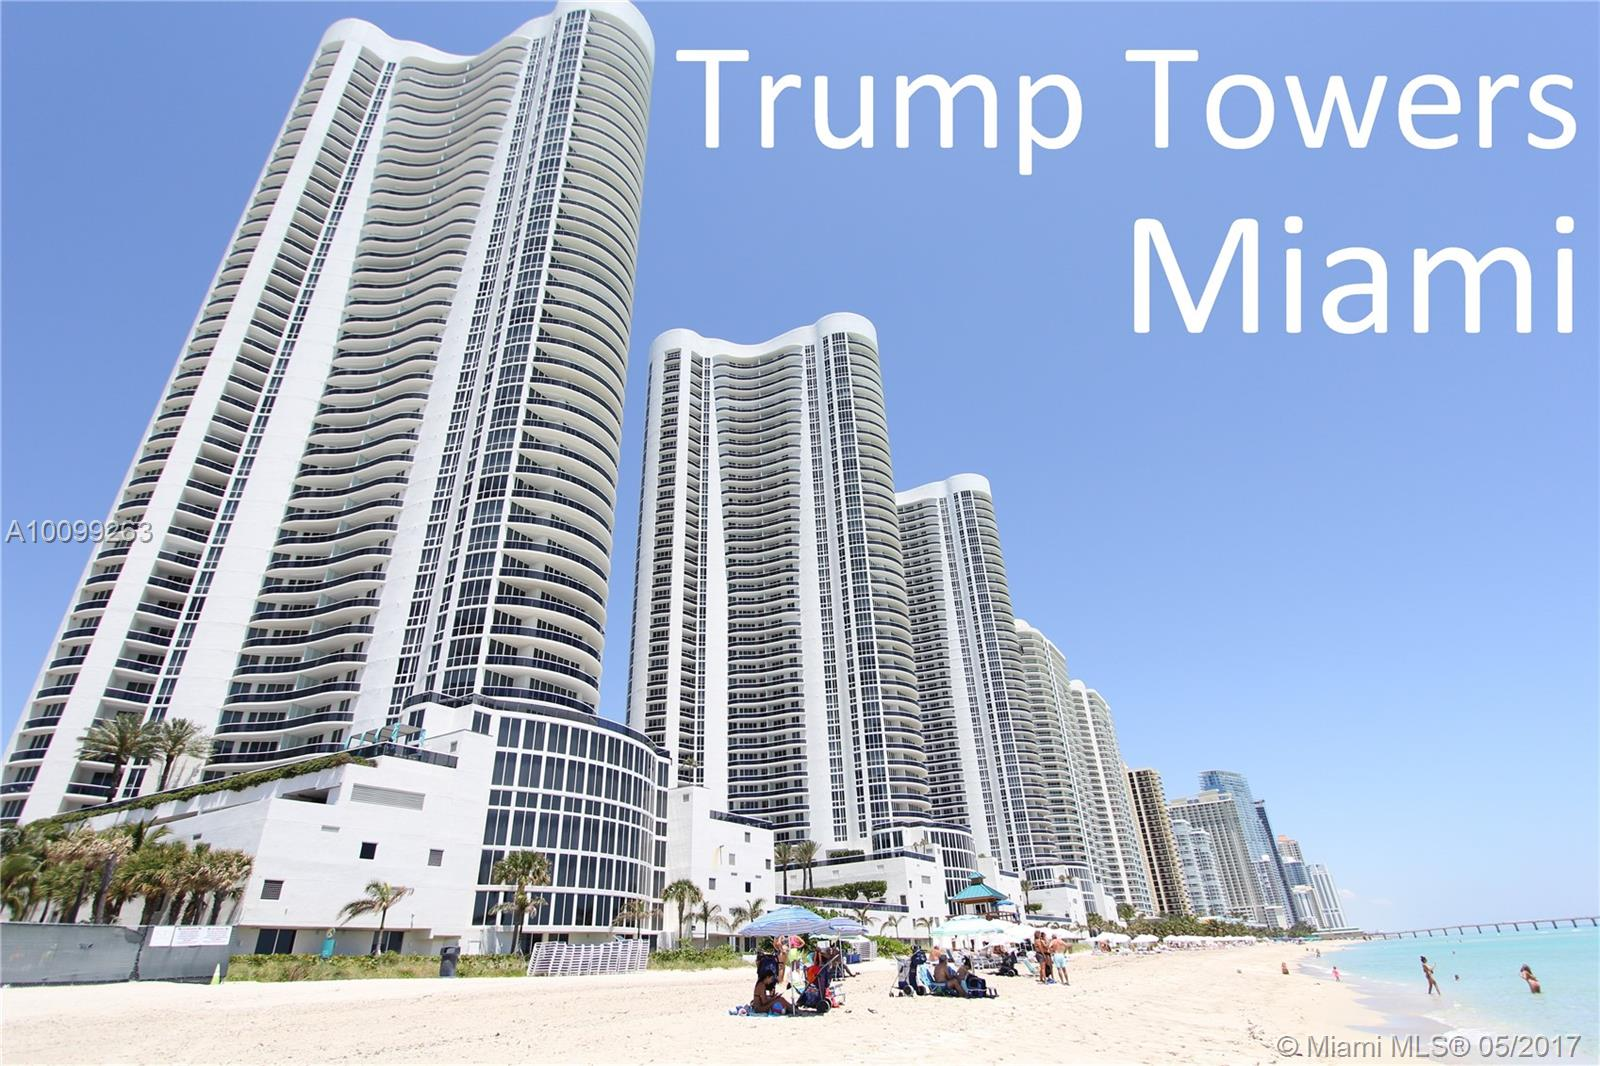 Trump Towers III